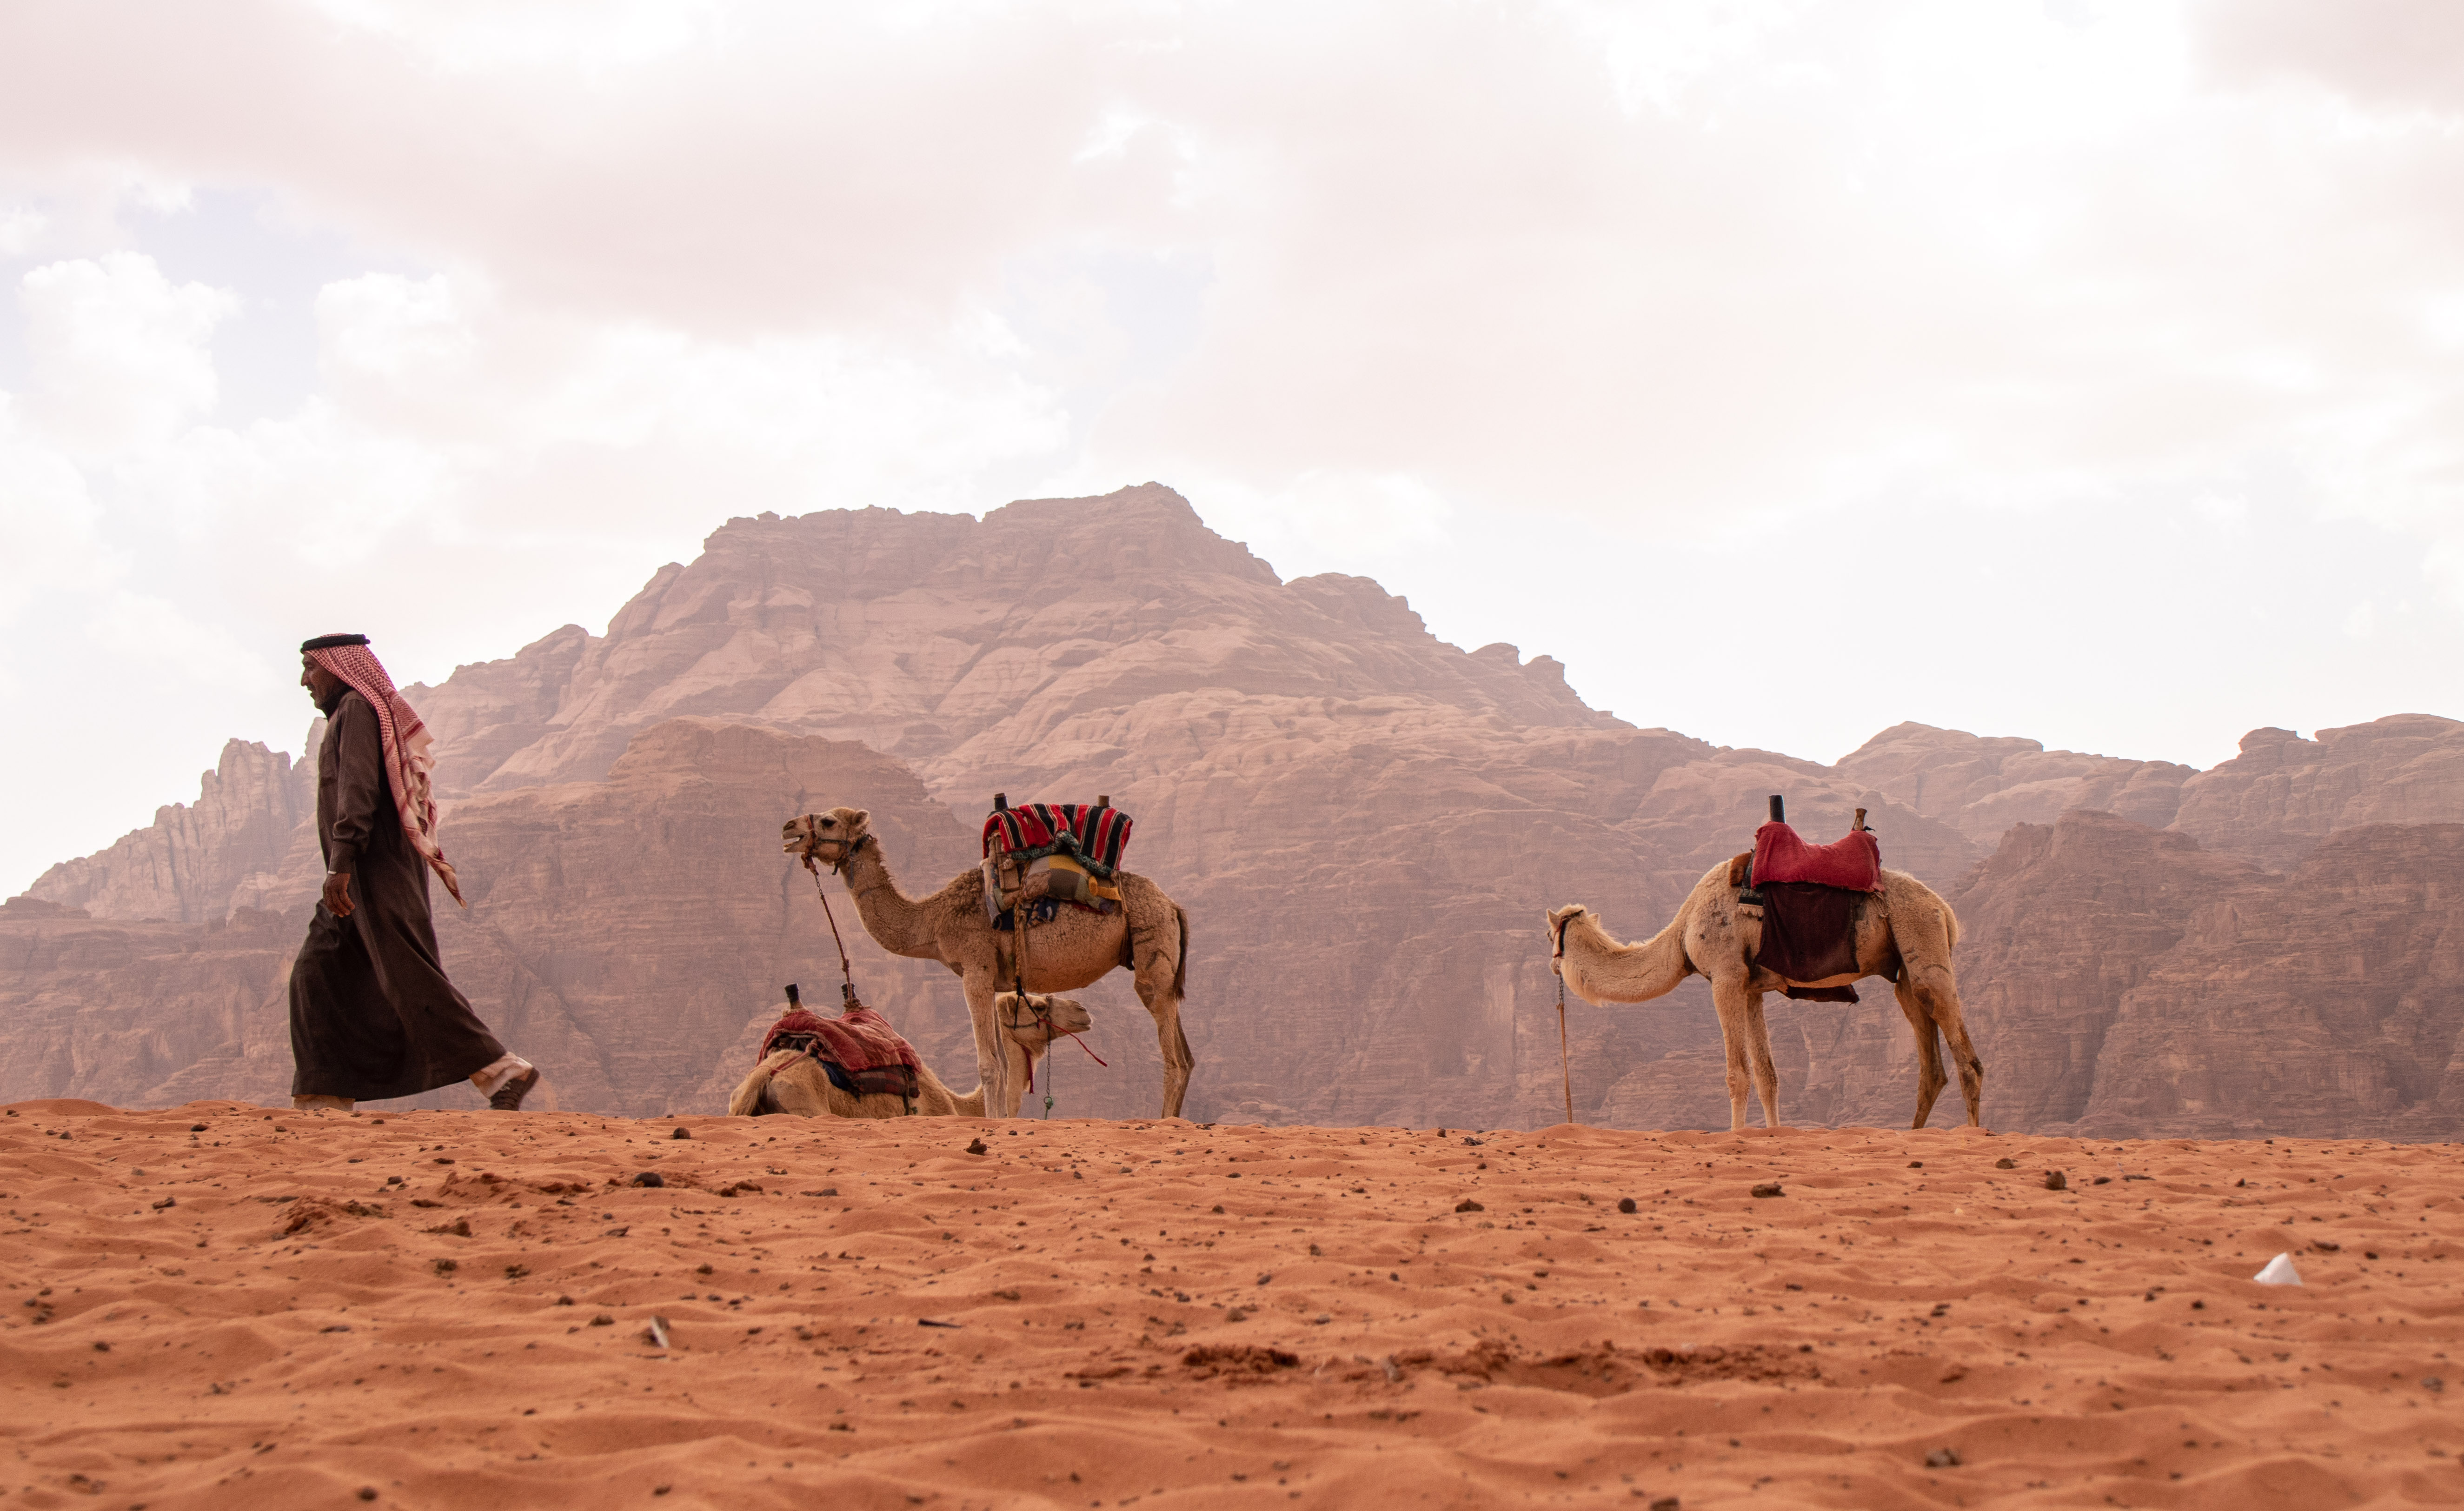 Bedouin with camels.